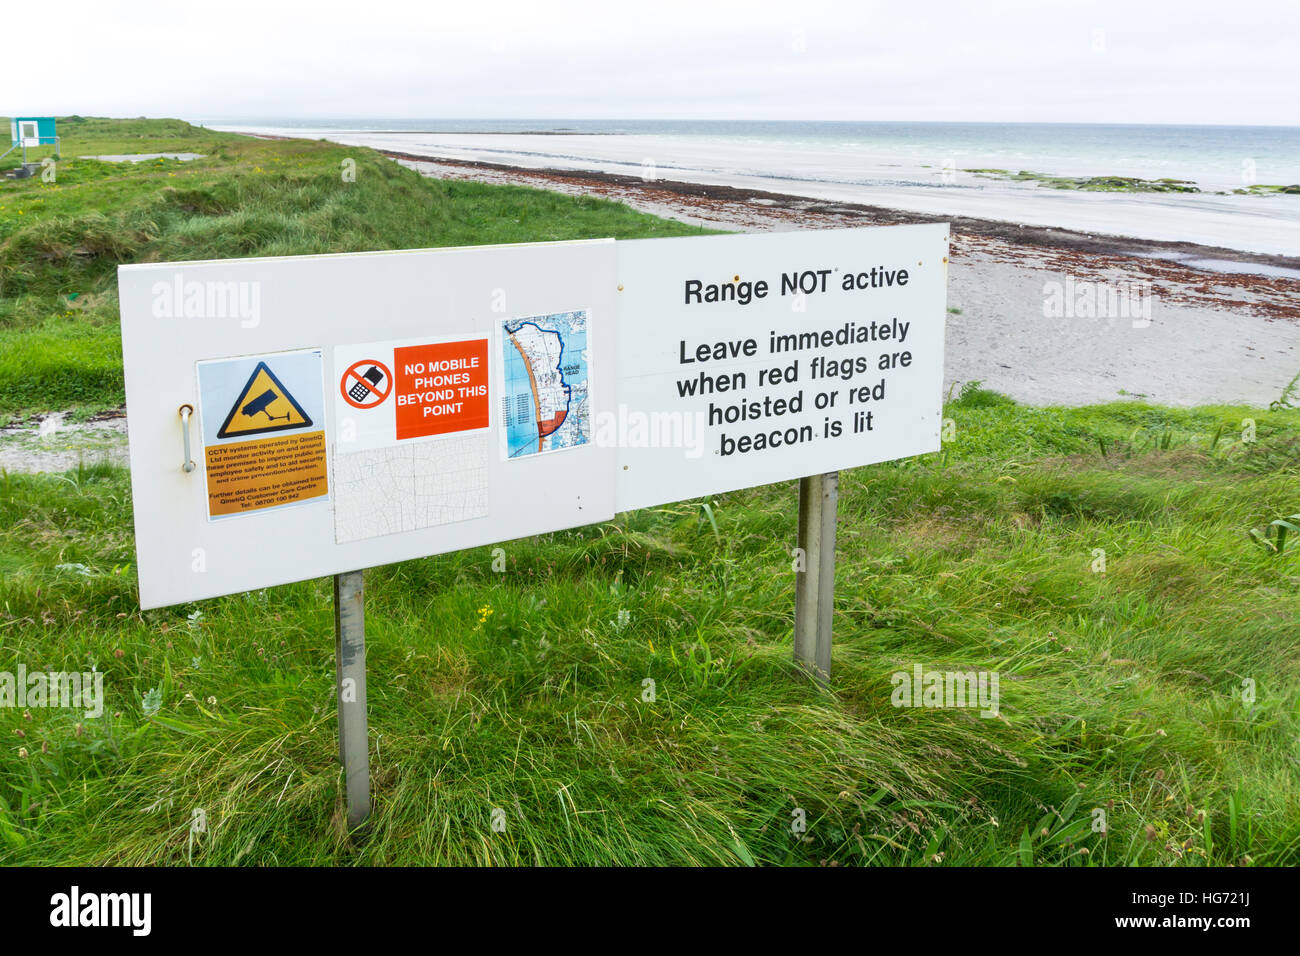 A warning sign at the South Uist missile range operated by Qinetiq in the Outer Hebrides. - Stock Image